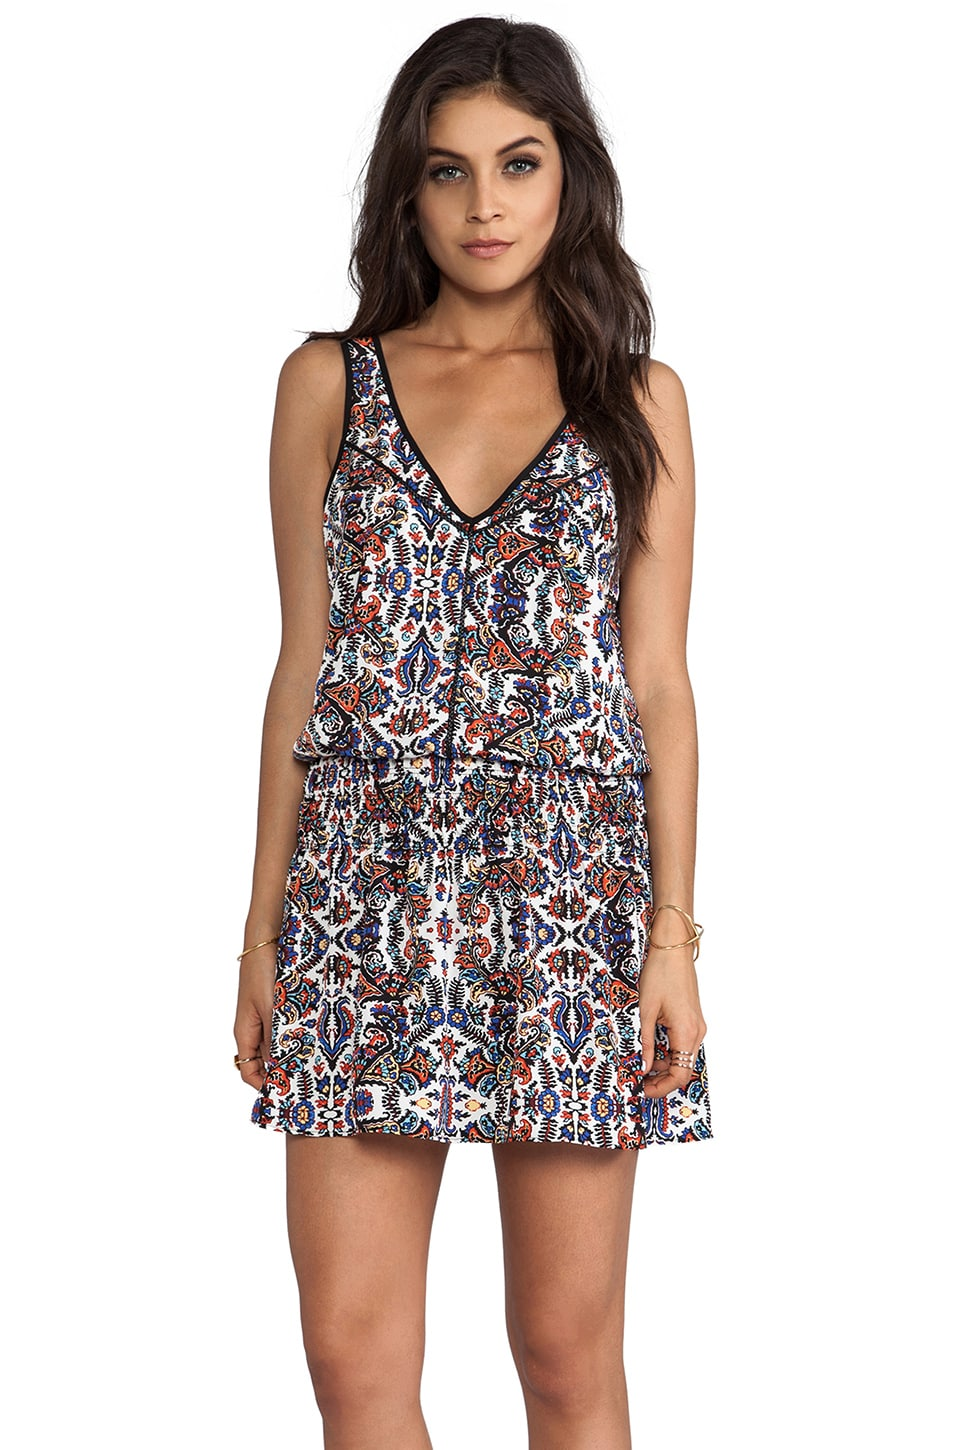 Dolce Vita Deandra Dress in Multi